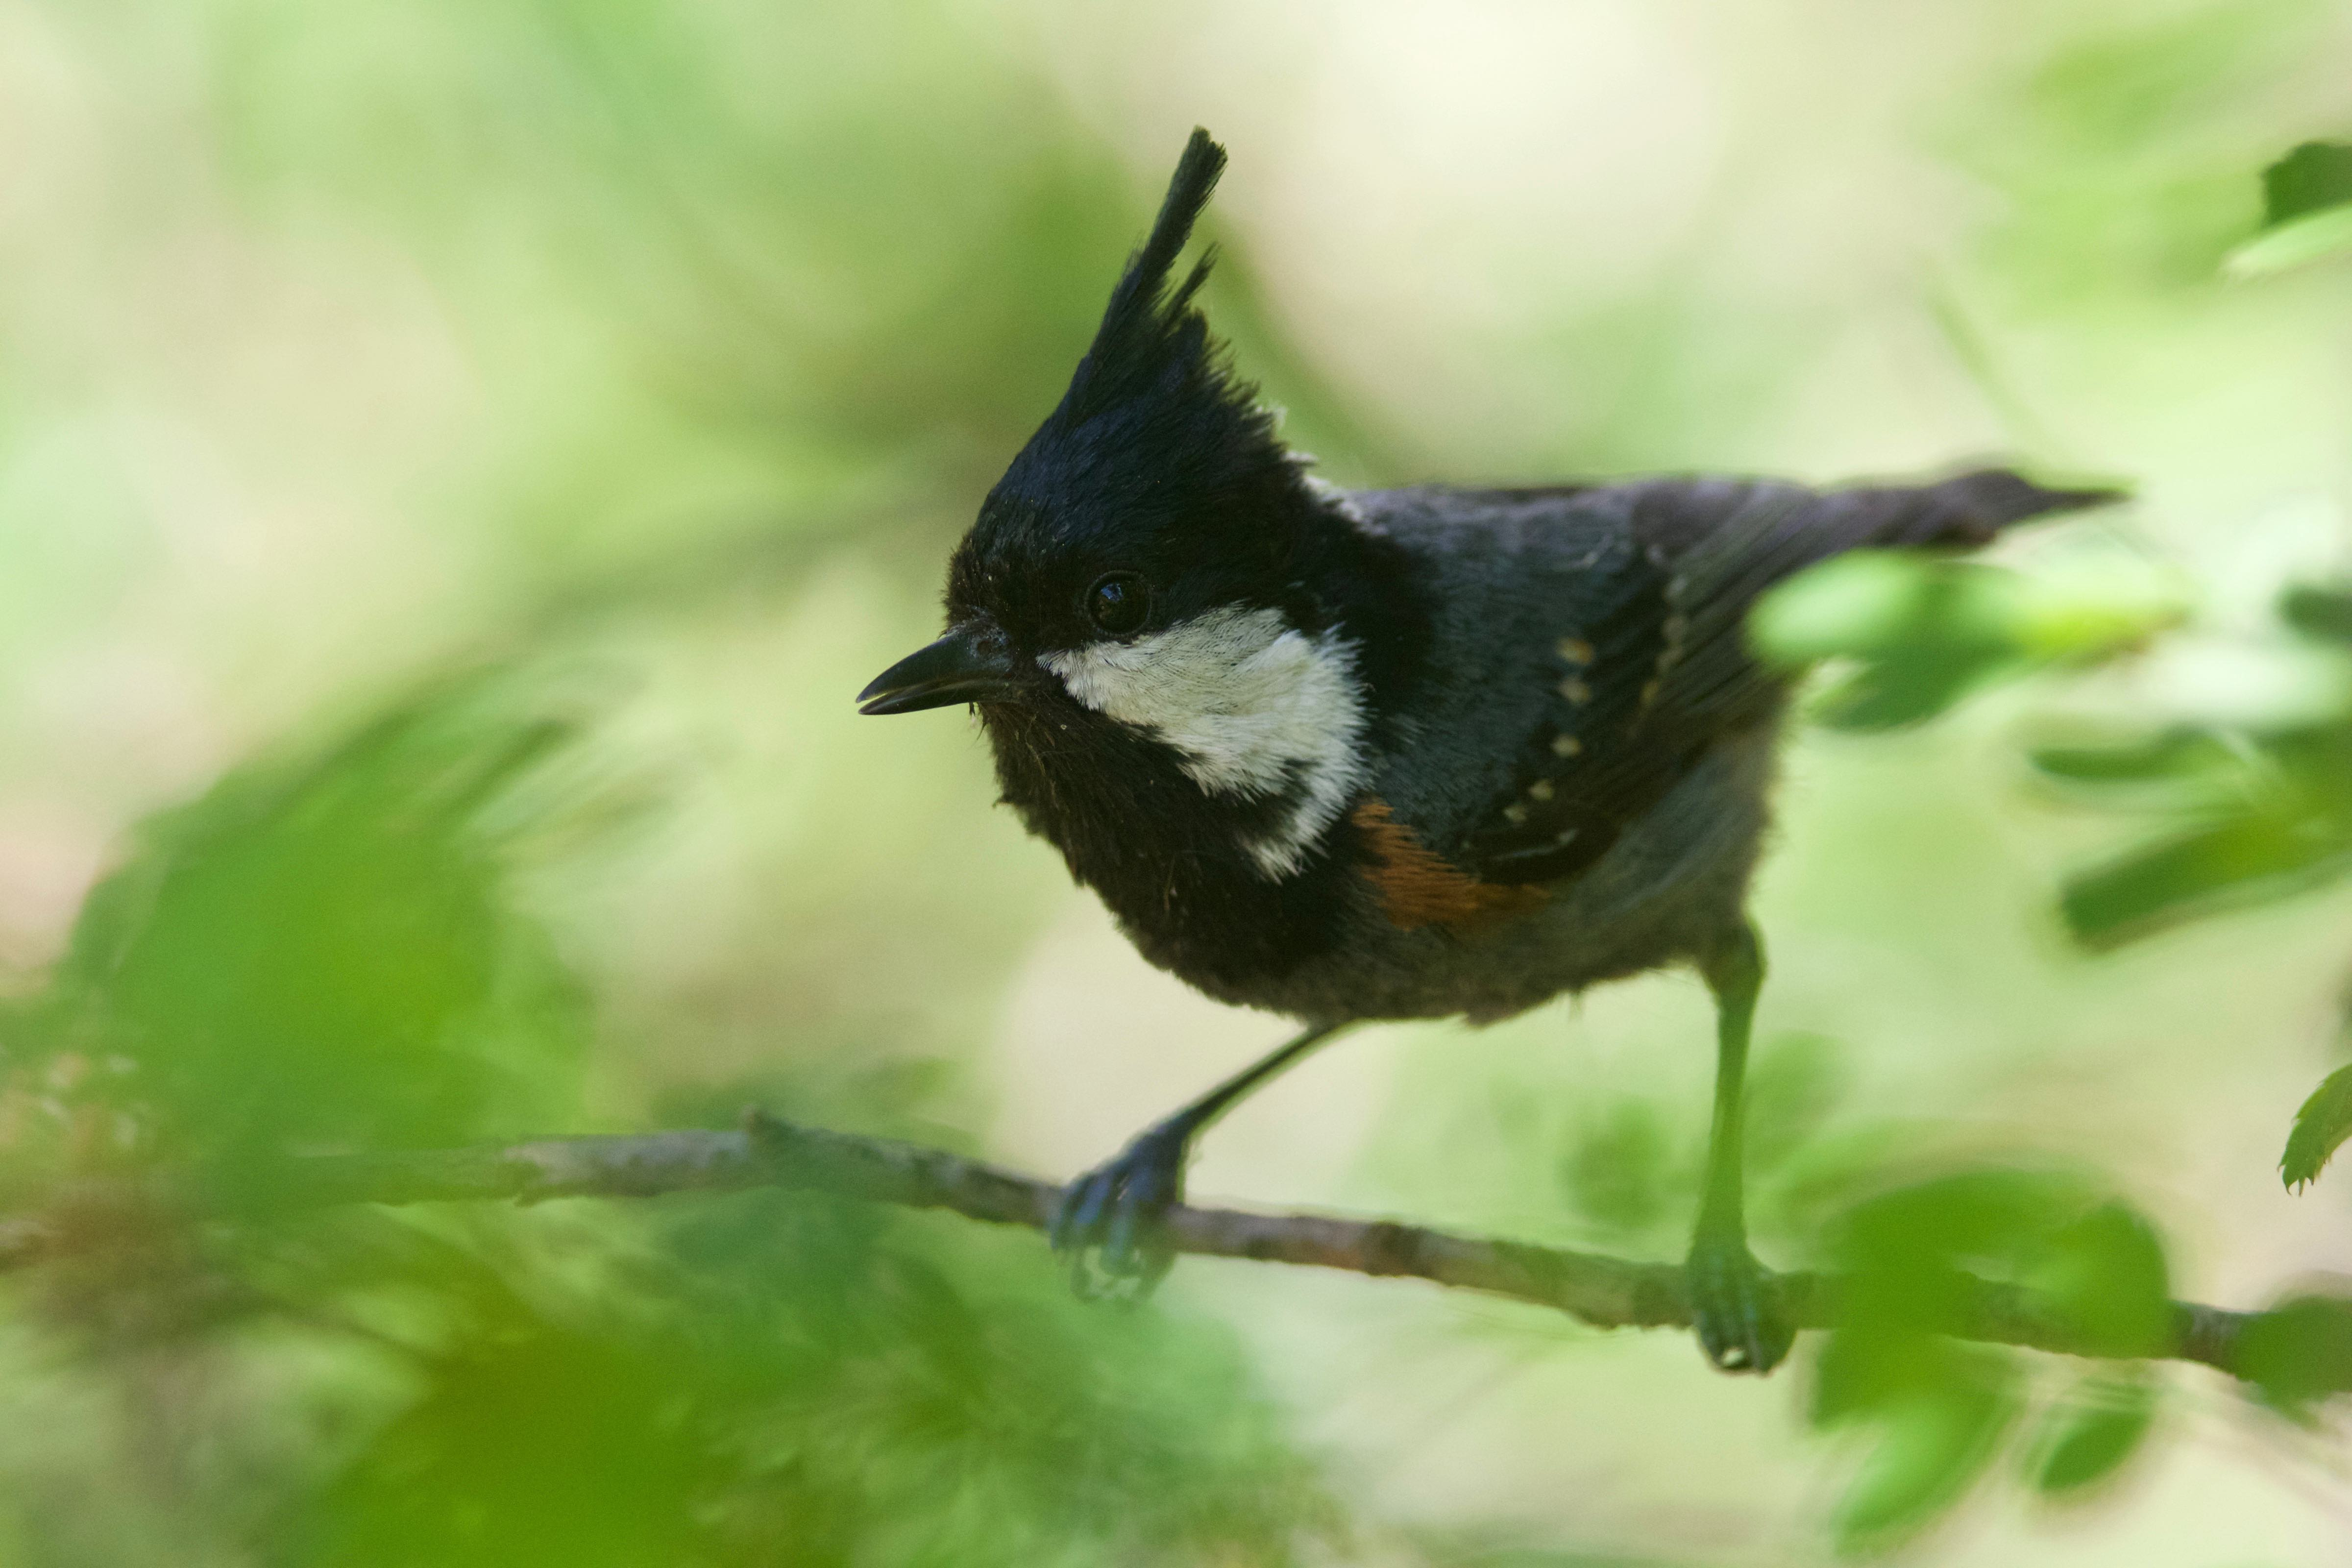 A spot-winged tit (Periparus melanolophus), a species found to be limited by habitat in the mixed coniferous forest, Great Himalayan National Park. Credit: Paul Elsen.